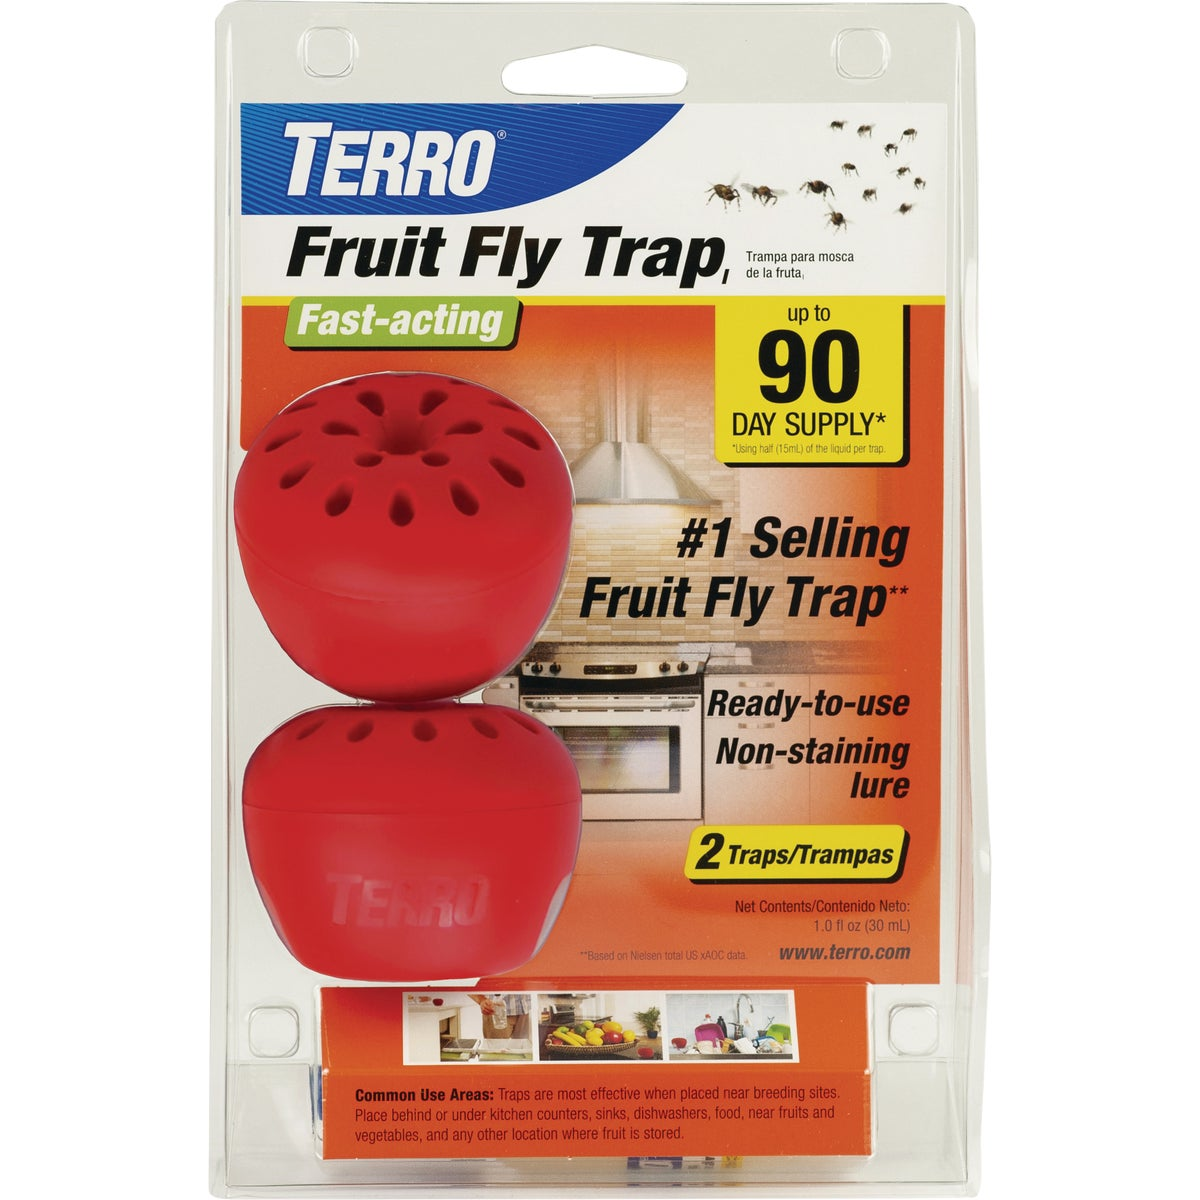 TERRO FRUIT FLY TRAP - T2500 by Woodstream Corp